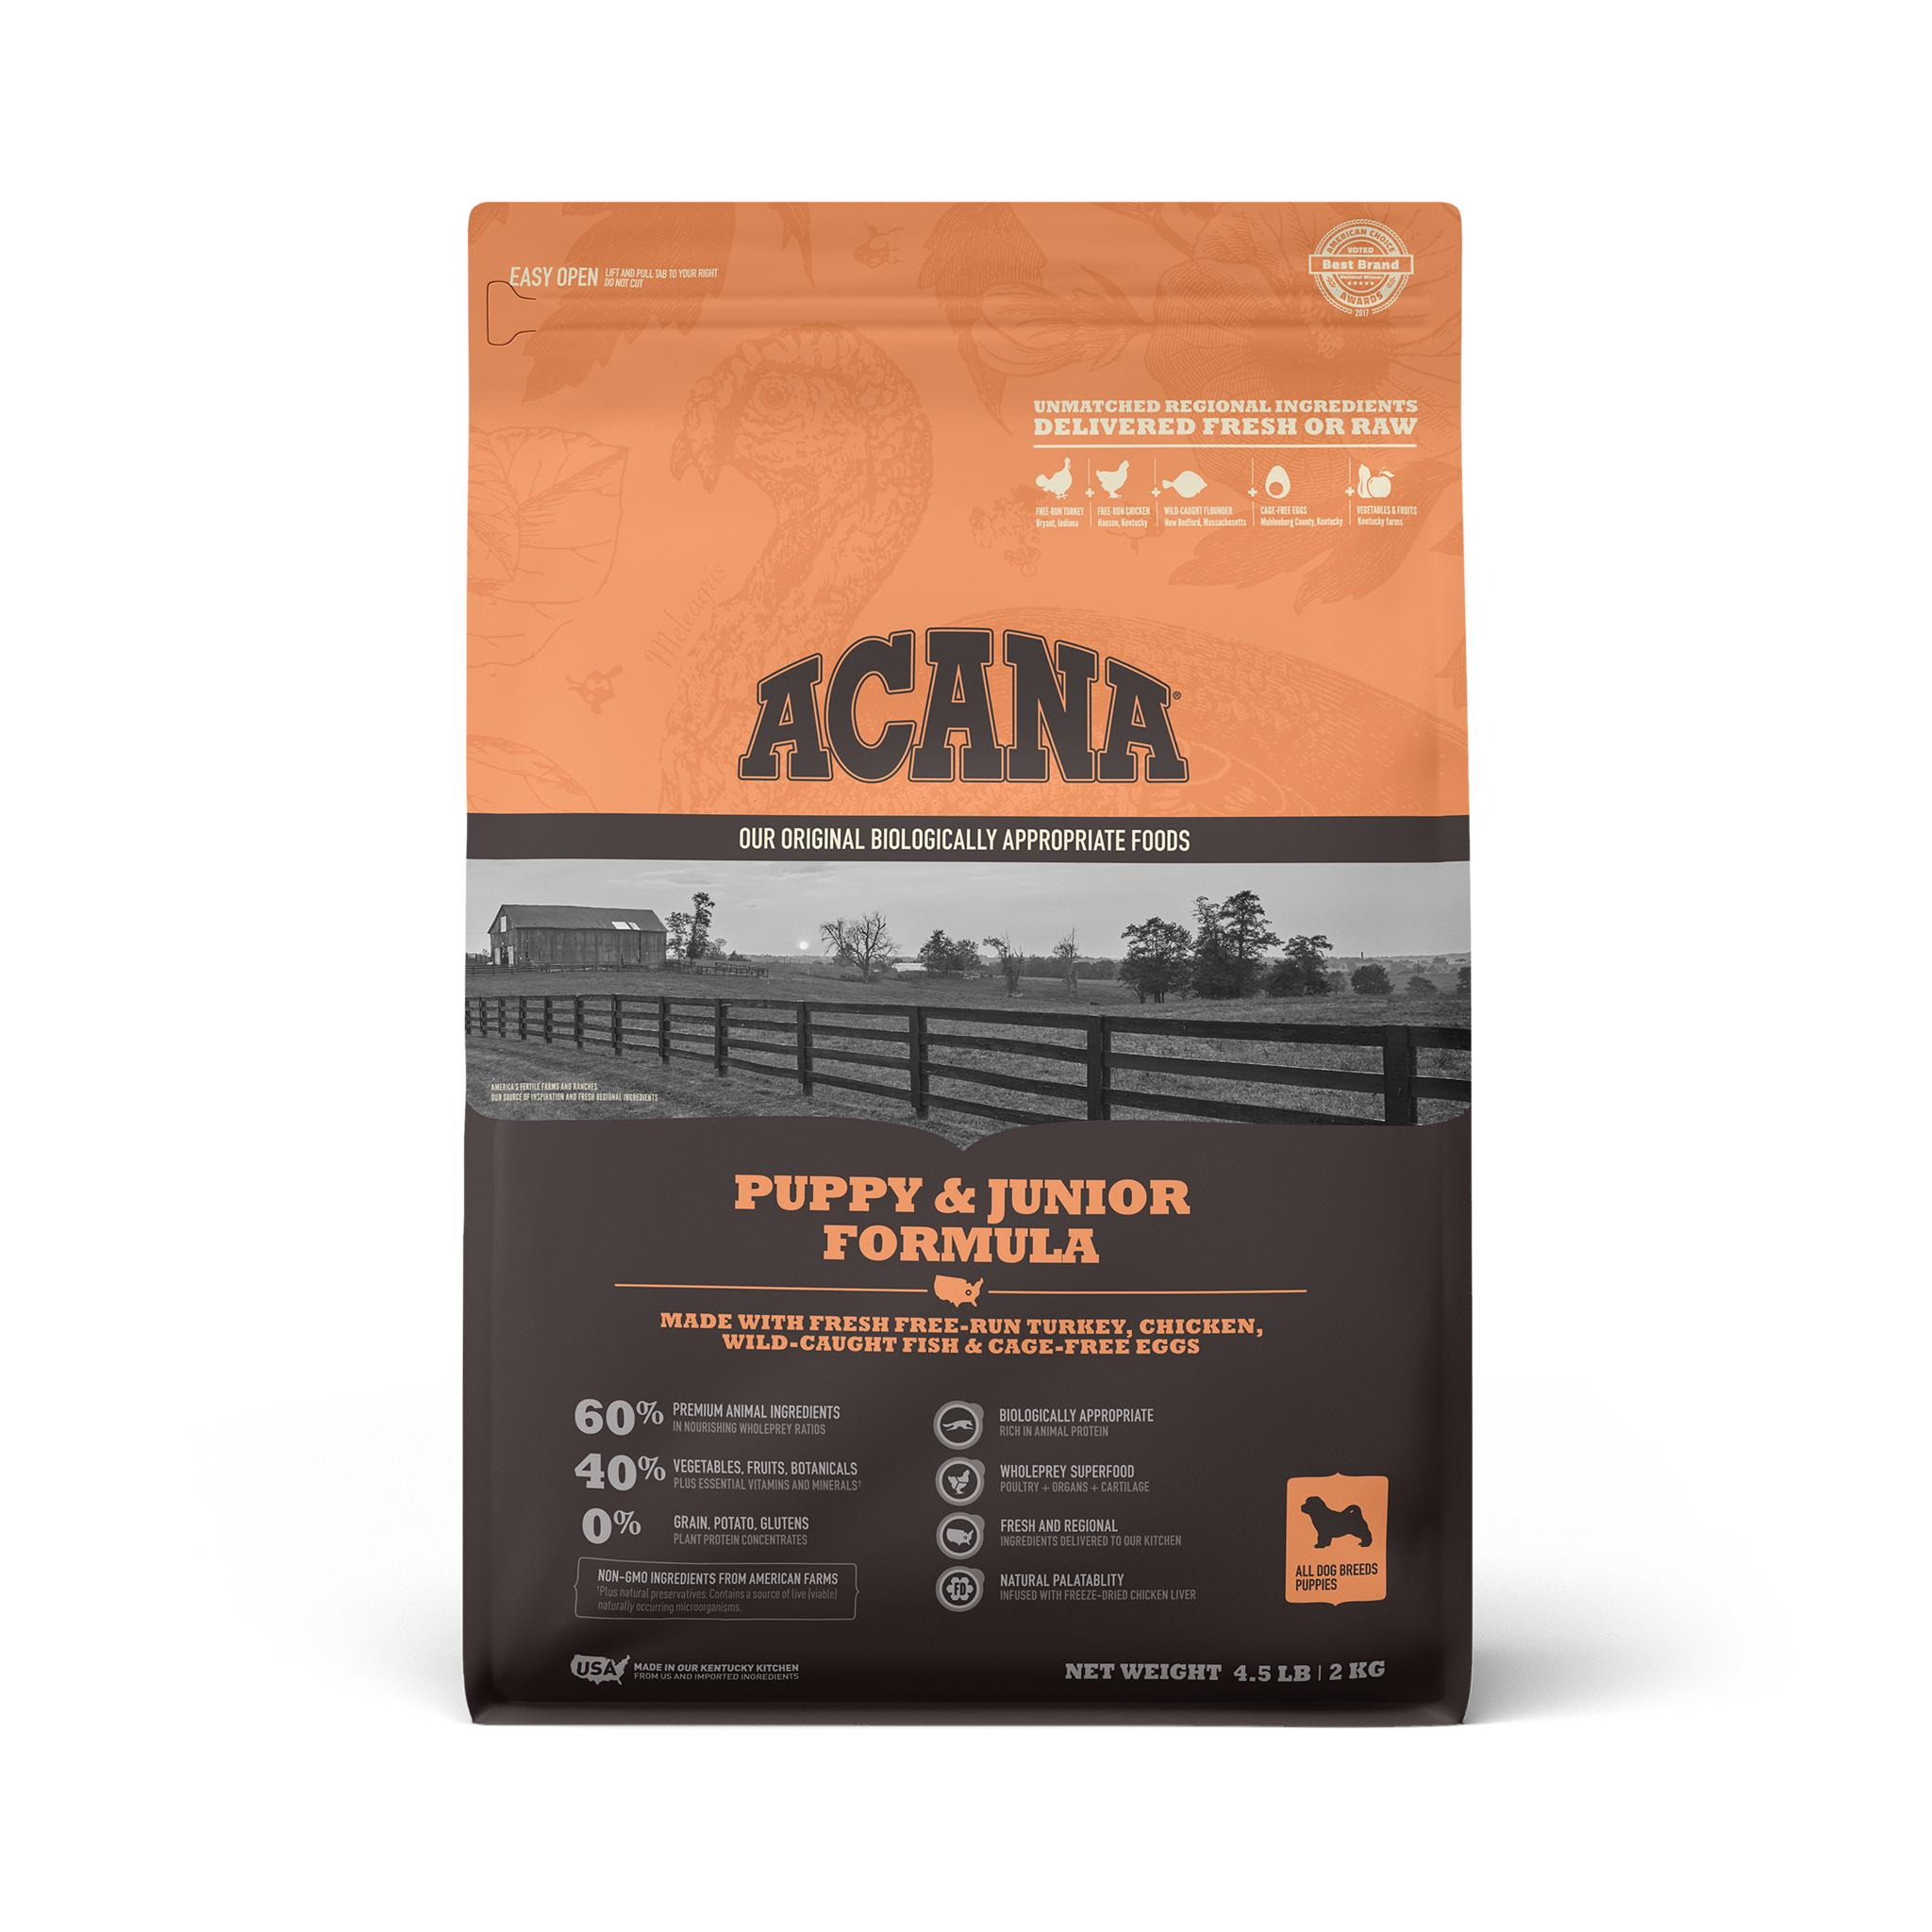 ACANA Puppy Grain-Free Dry Dog Food, 4.5-lb